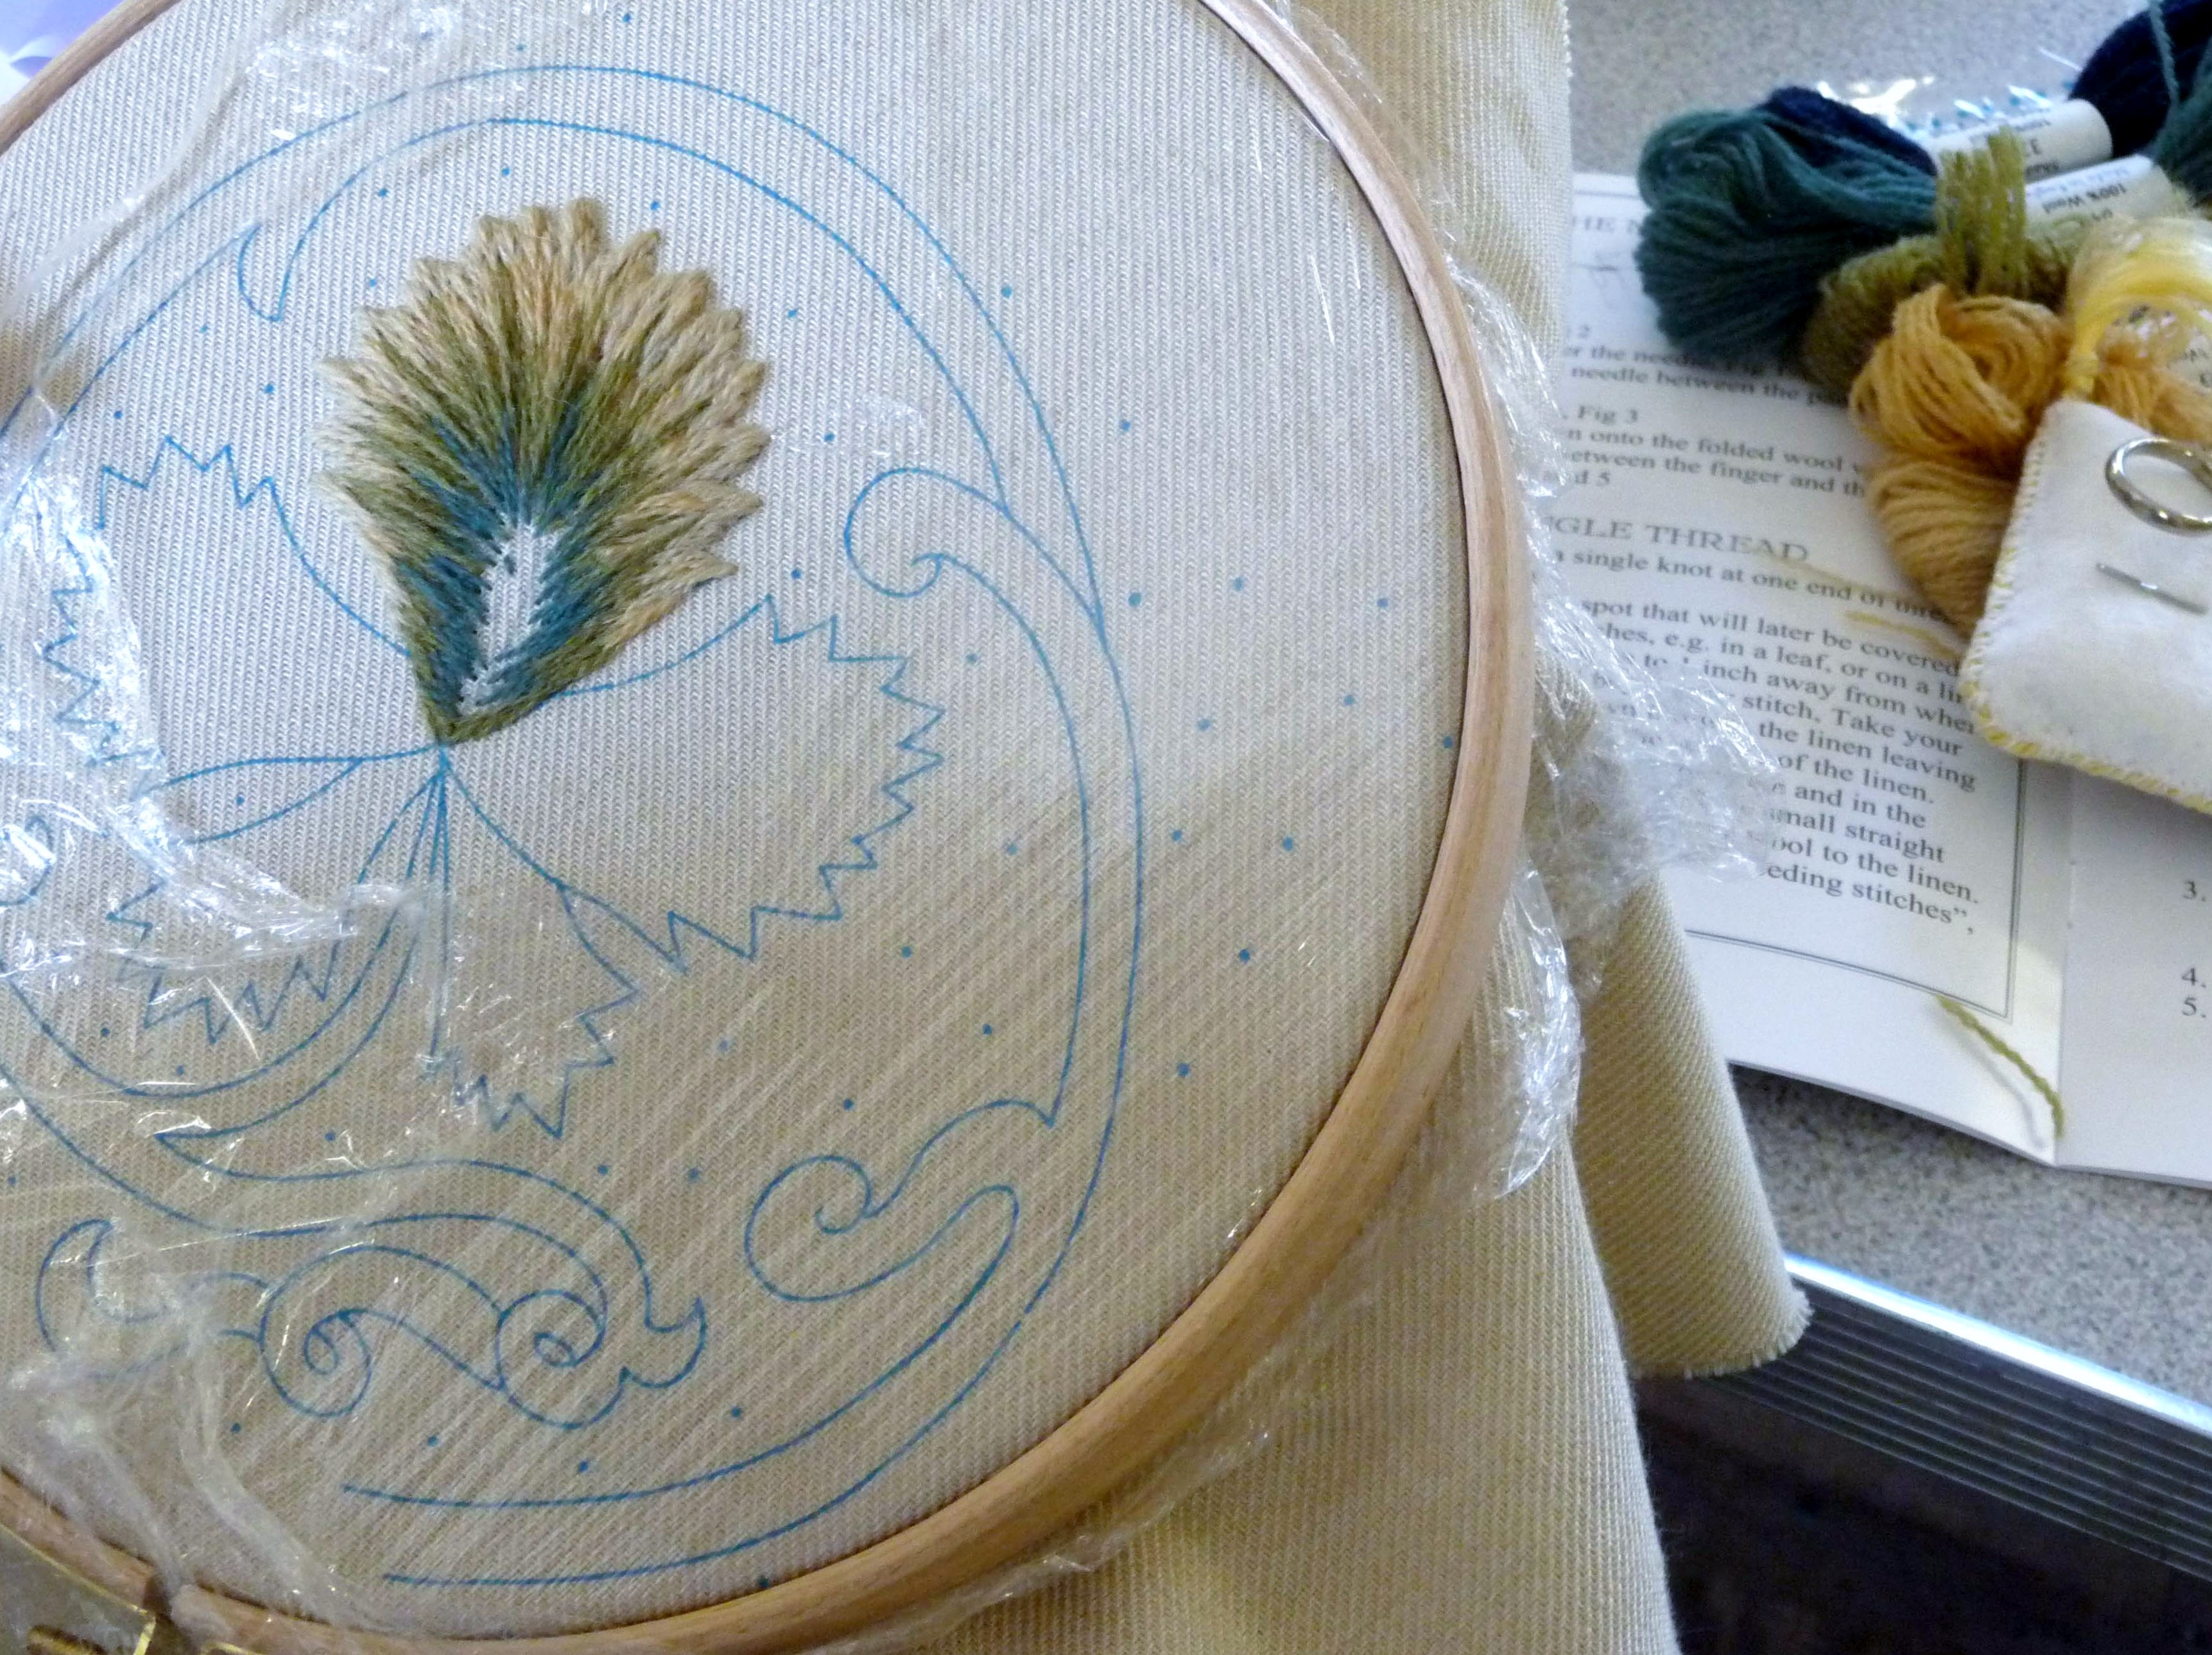 Mal has mastered long and short stitch at Philipa Turnbull's crewelwork workshop